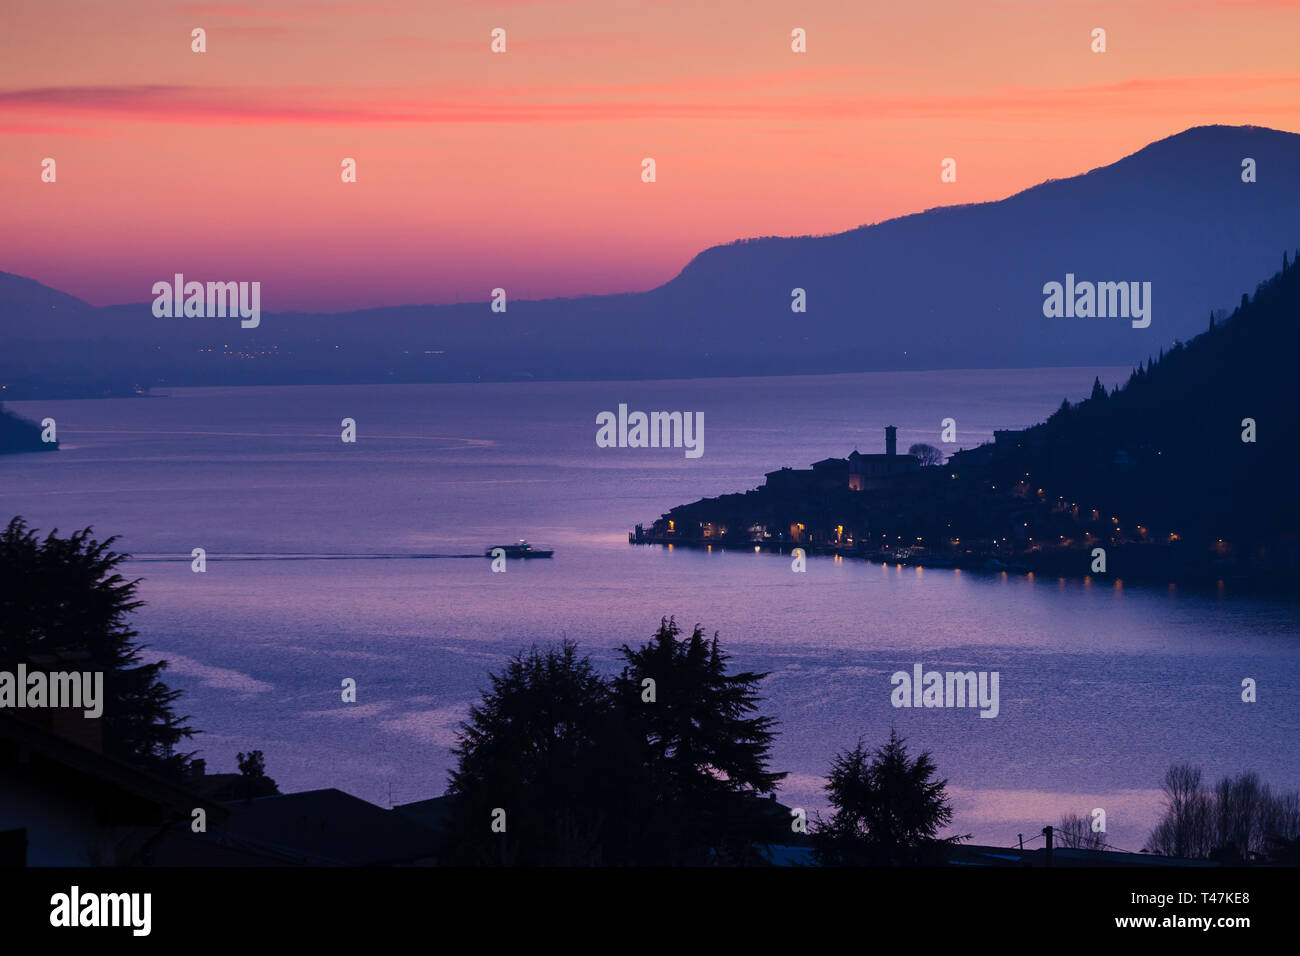 Lake Iseo with Peschiera Maraglio at dusk, Lombardy, Italy - Stock Image